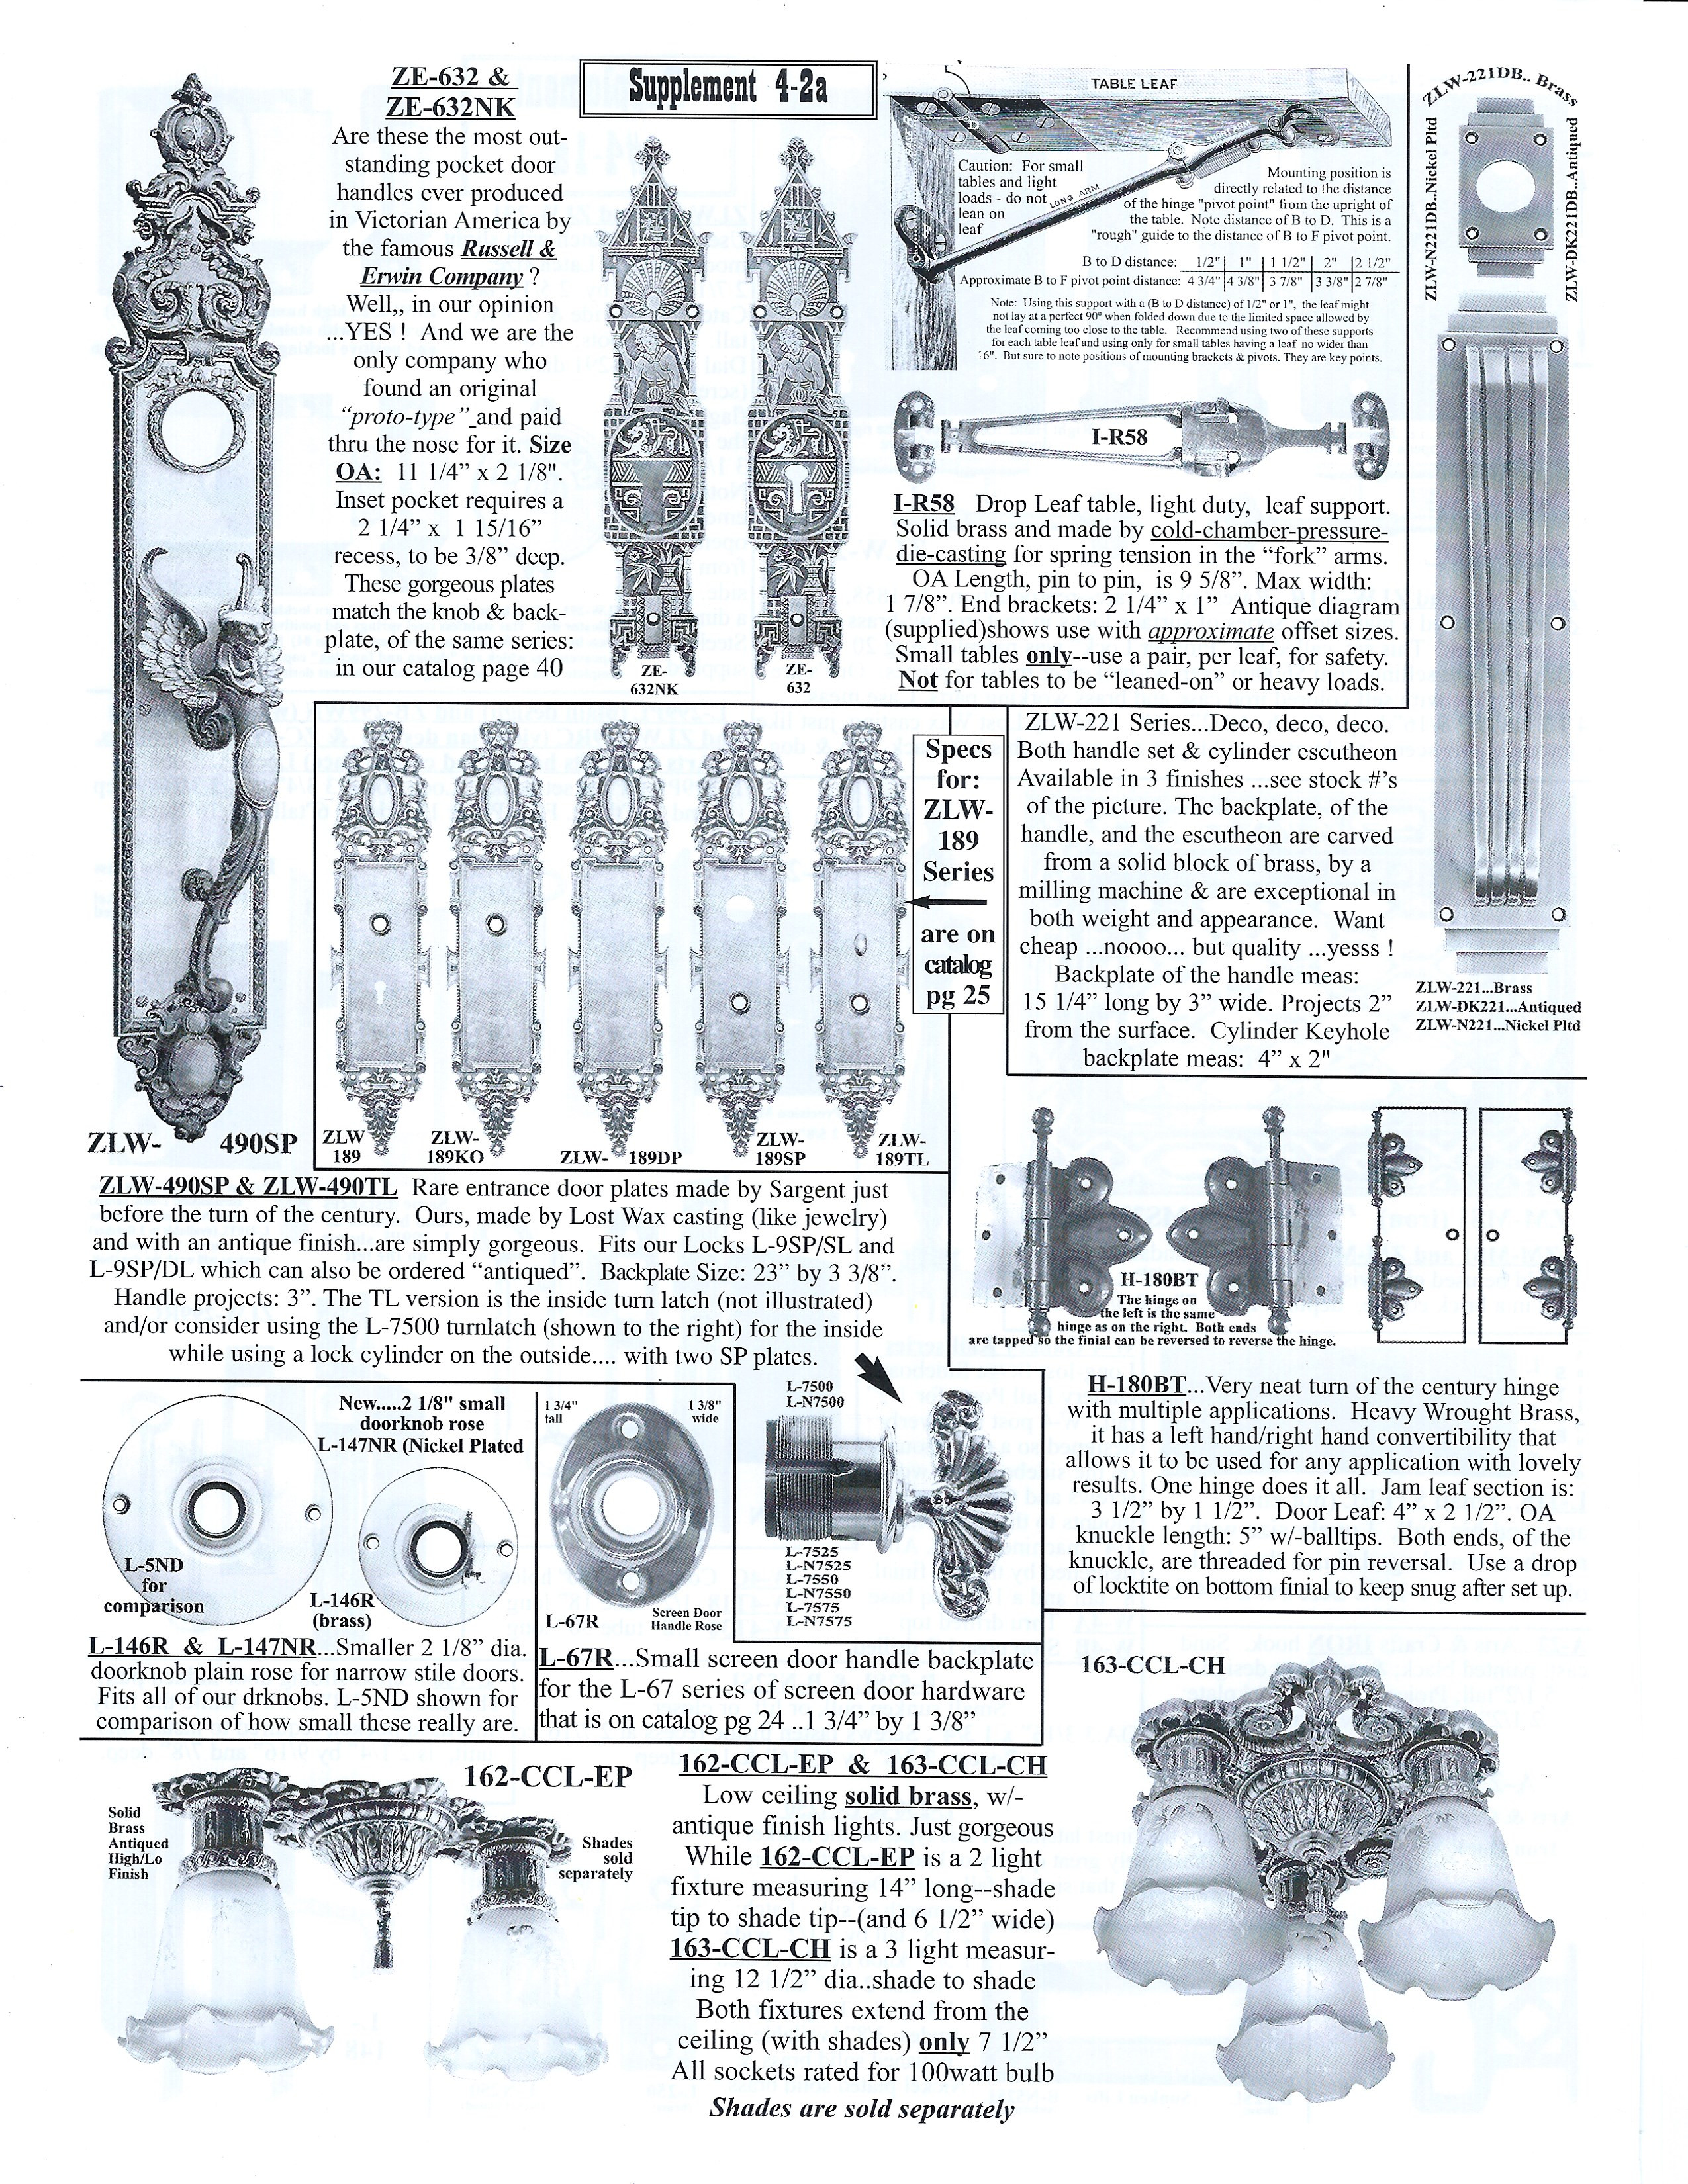 Catalog page 52